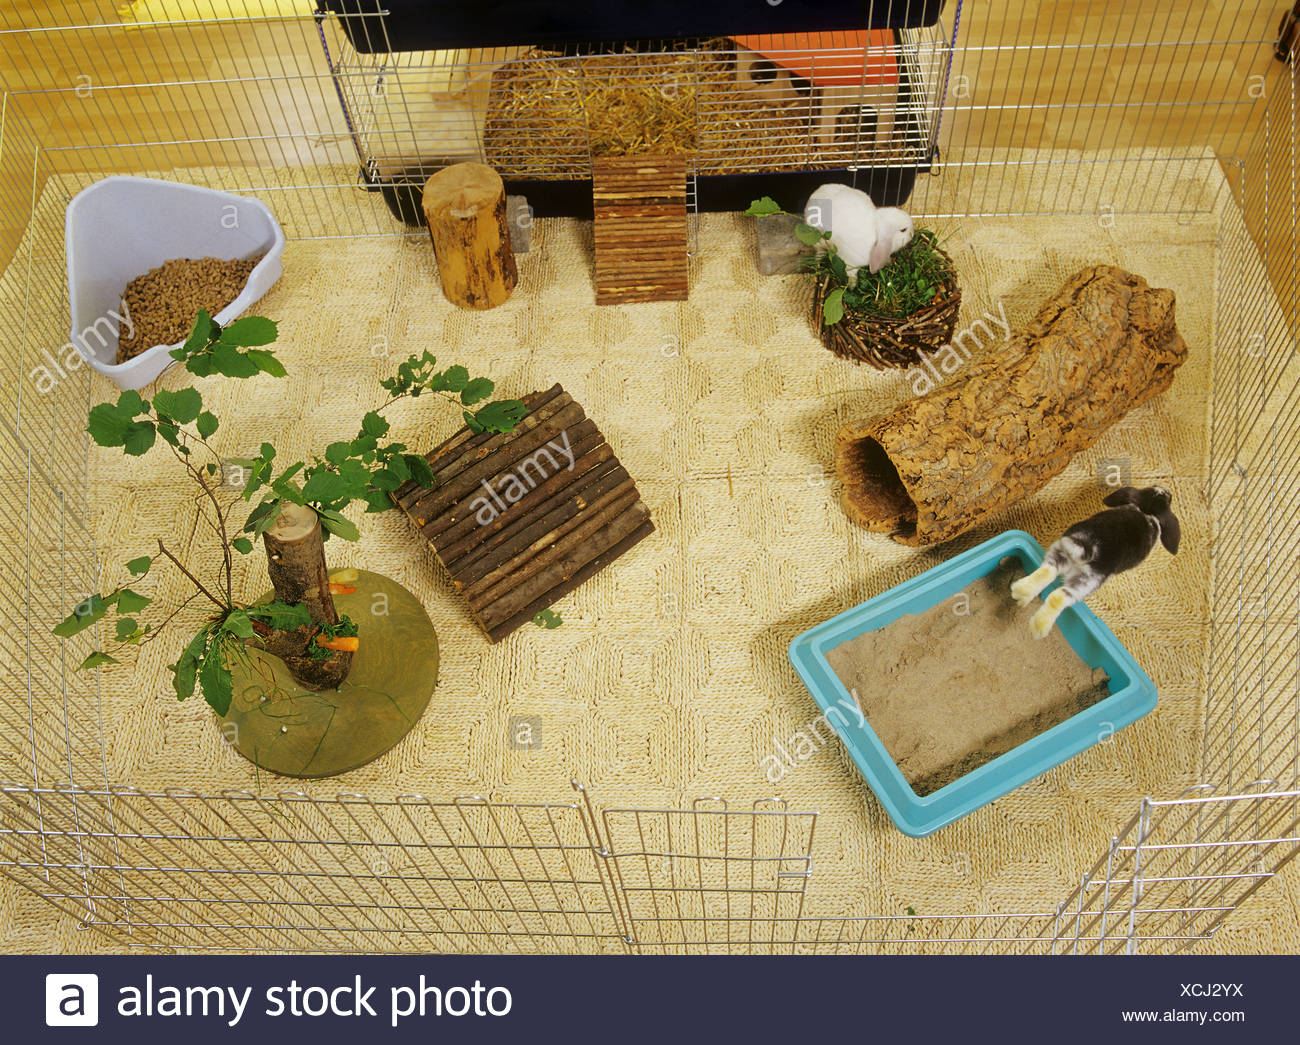 rabbit outdoor enclosure - in apartment attached to cage - Stock Image